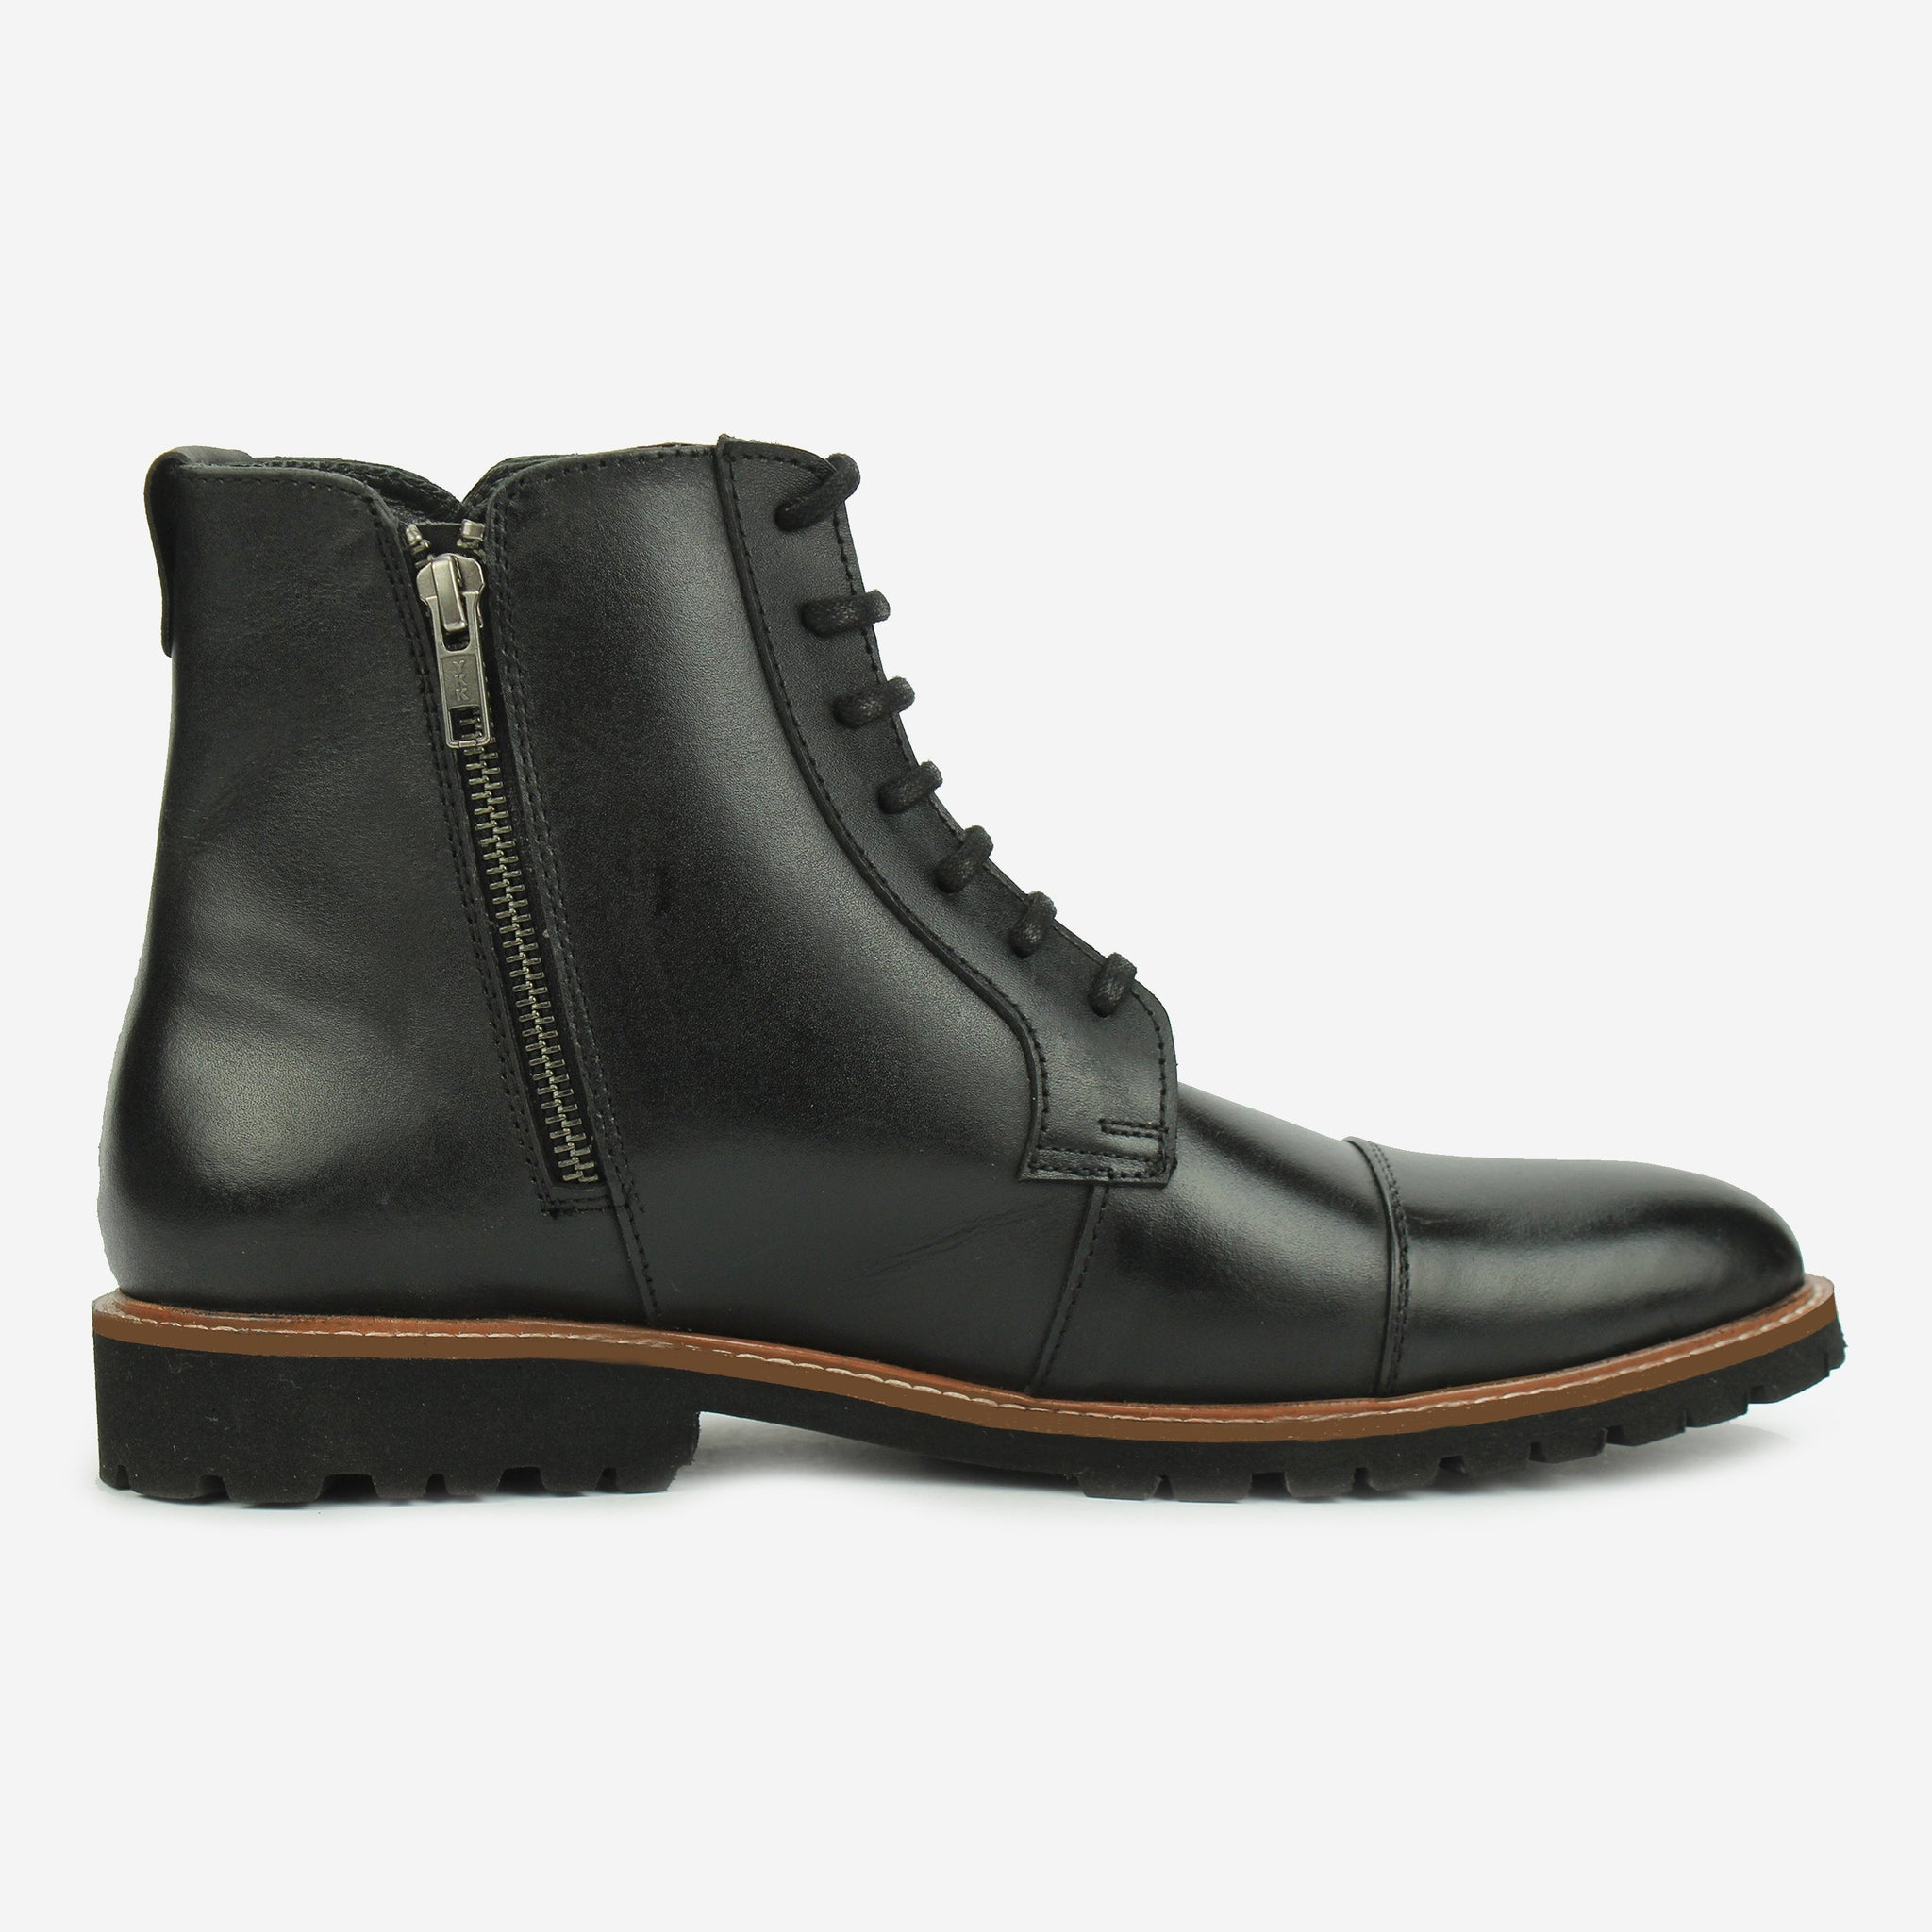 Aerglo LaceUp Boot Black Thebootsco